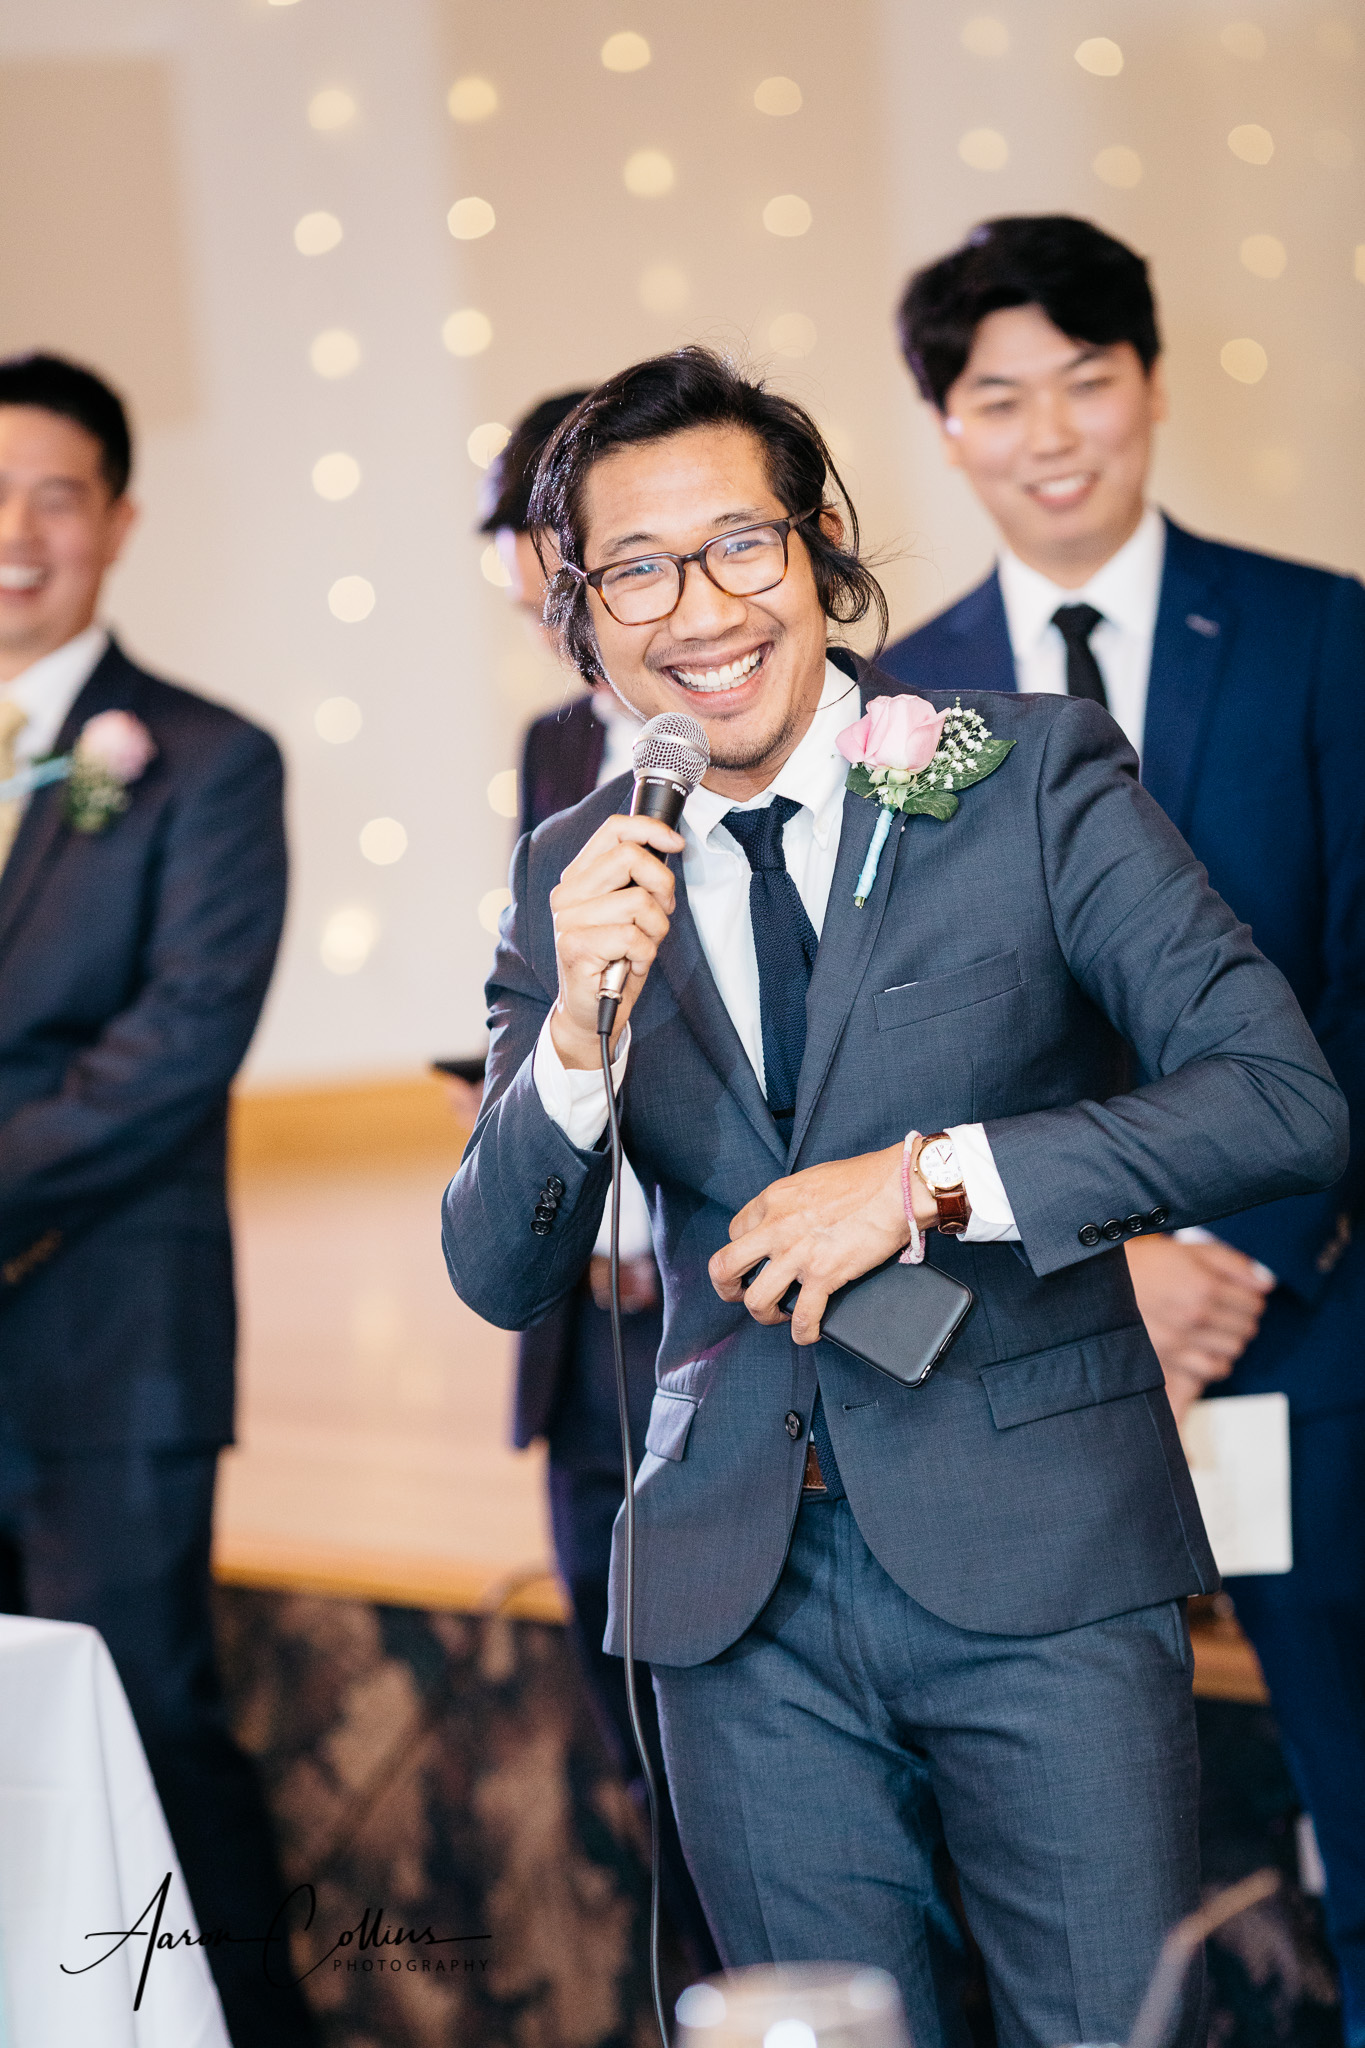 Groomsman gives a toast at the reception